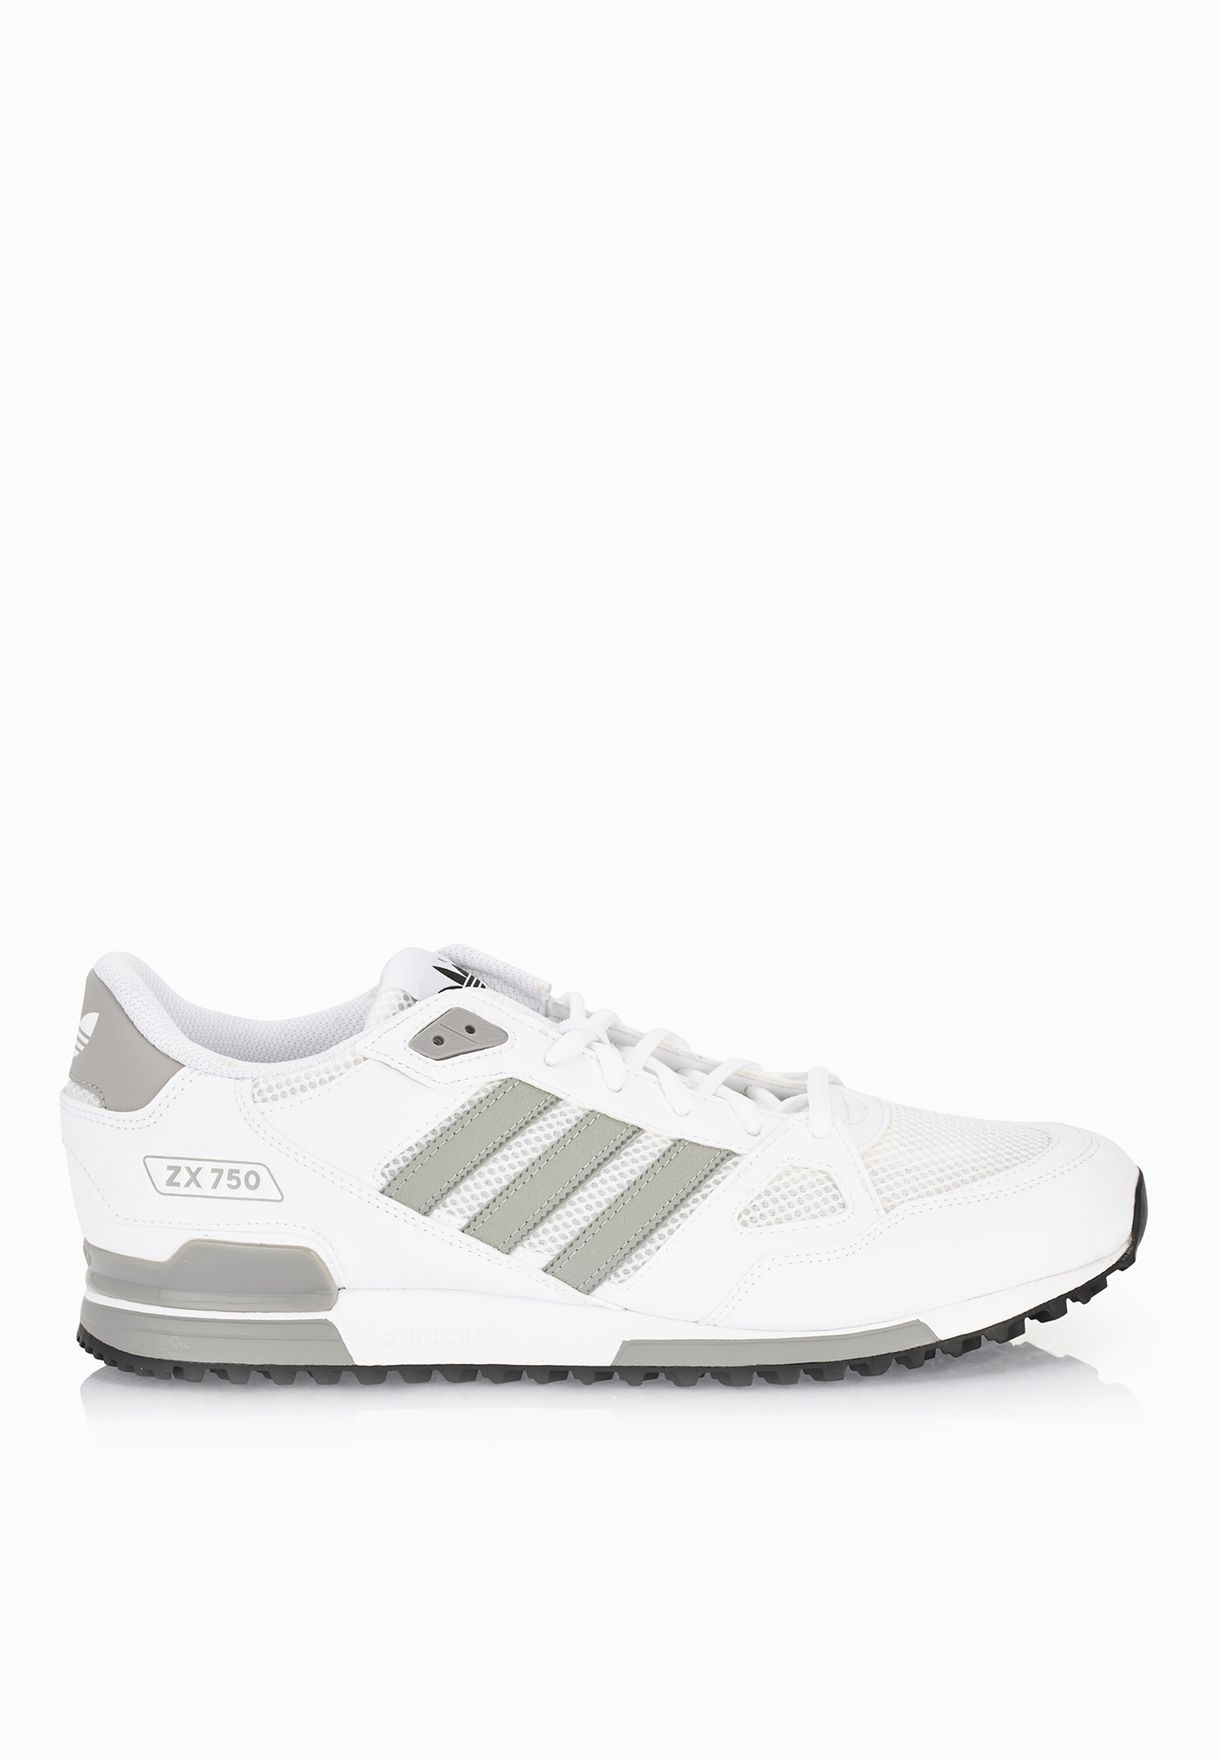 2c3fe7cf282e8 ... new style shop adidas originals white zx 750 s76189 for men in saudi  ad478sh03ptc 00545 94fff